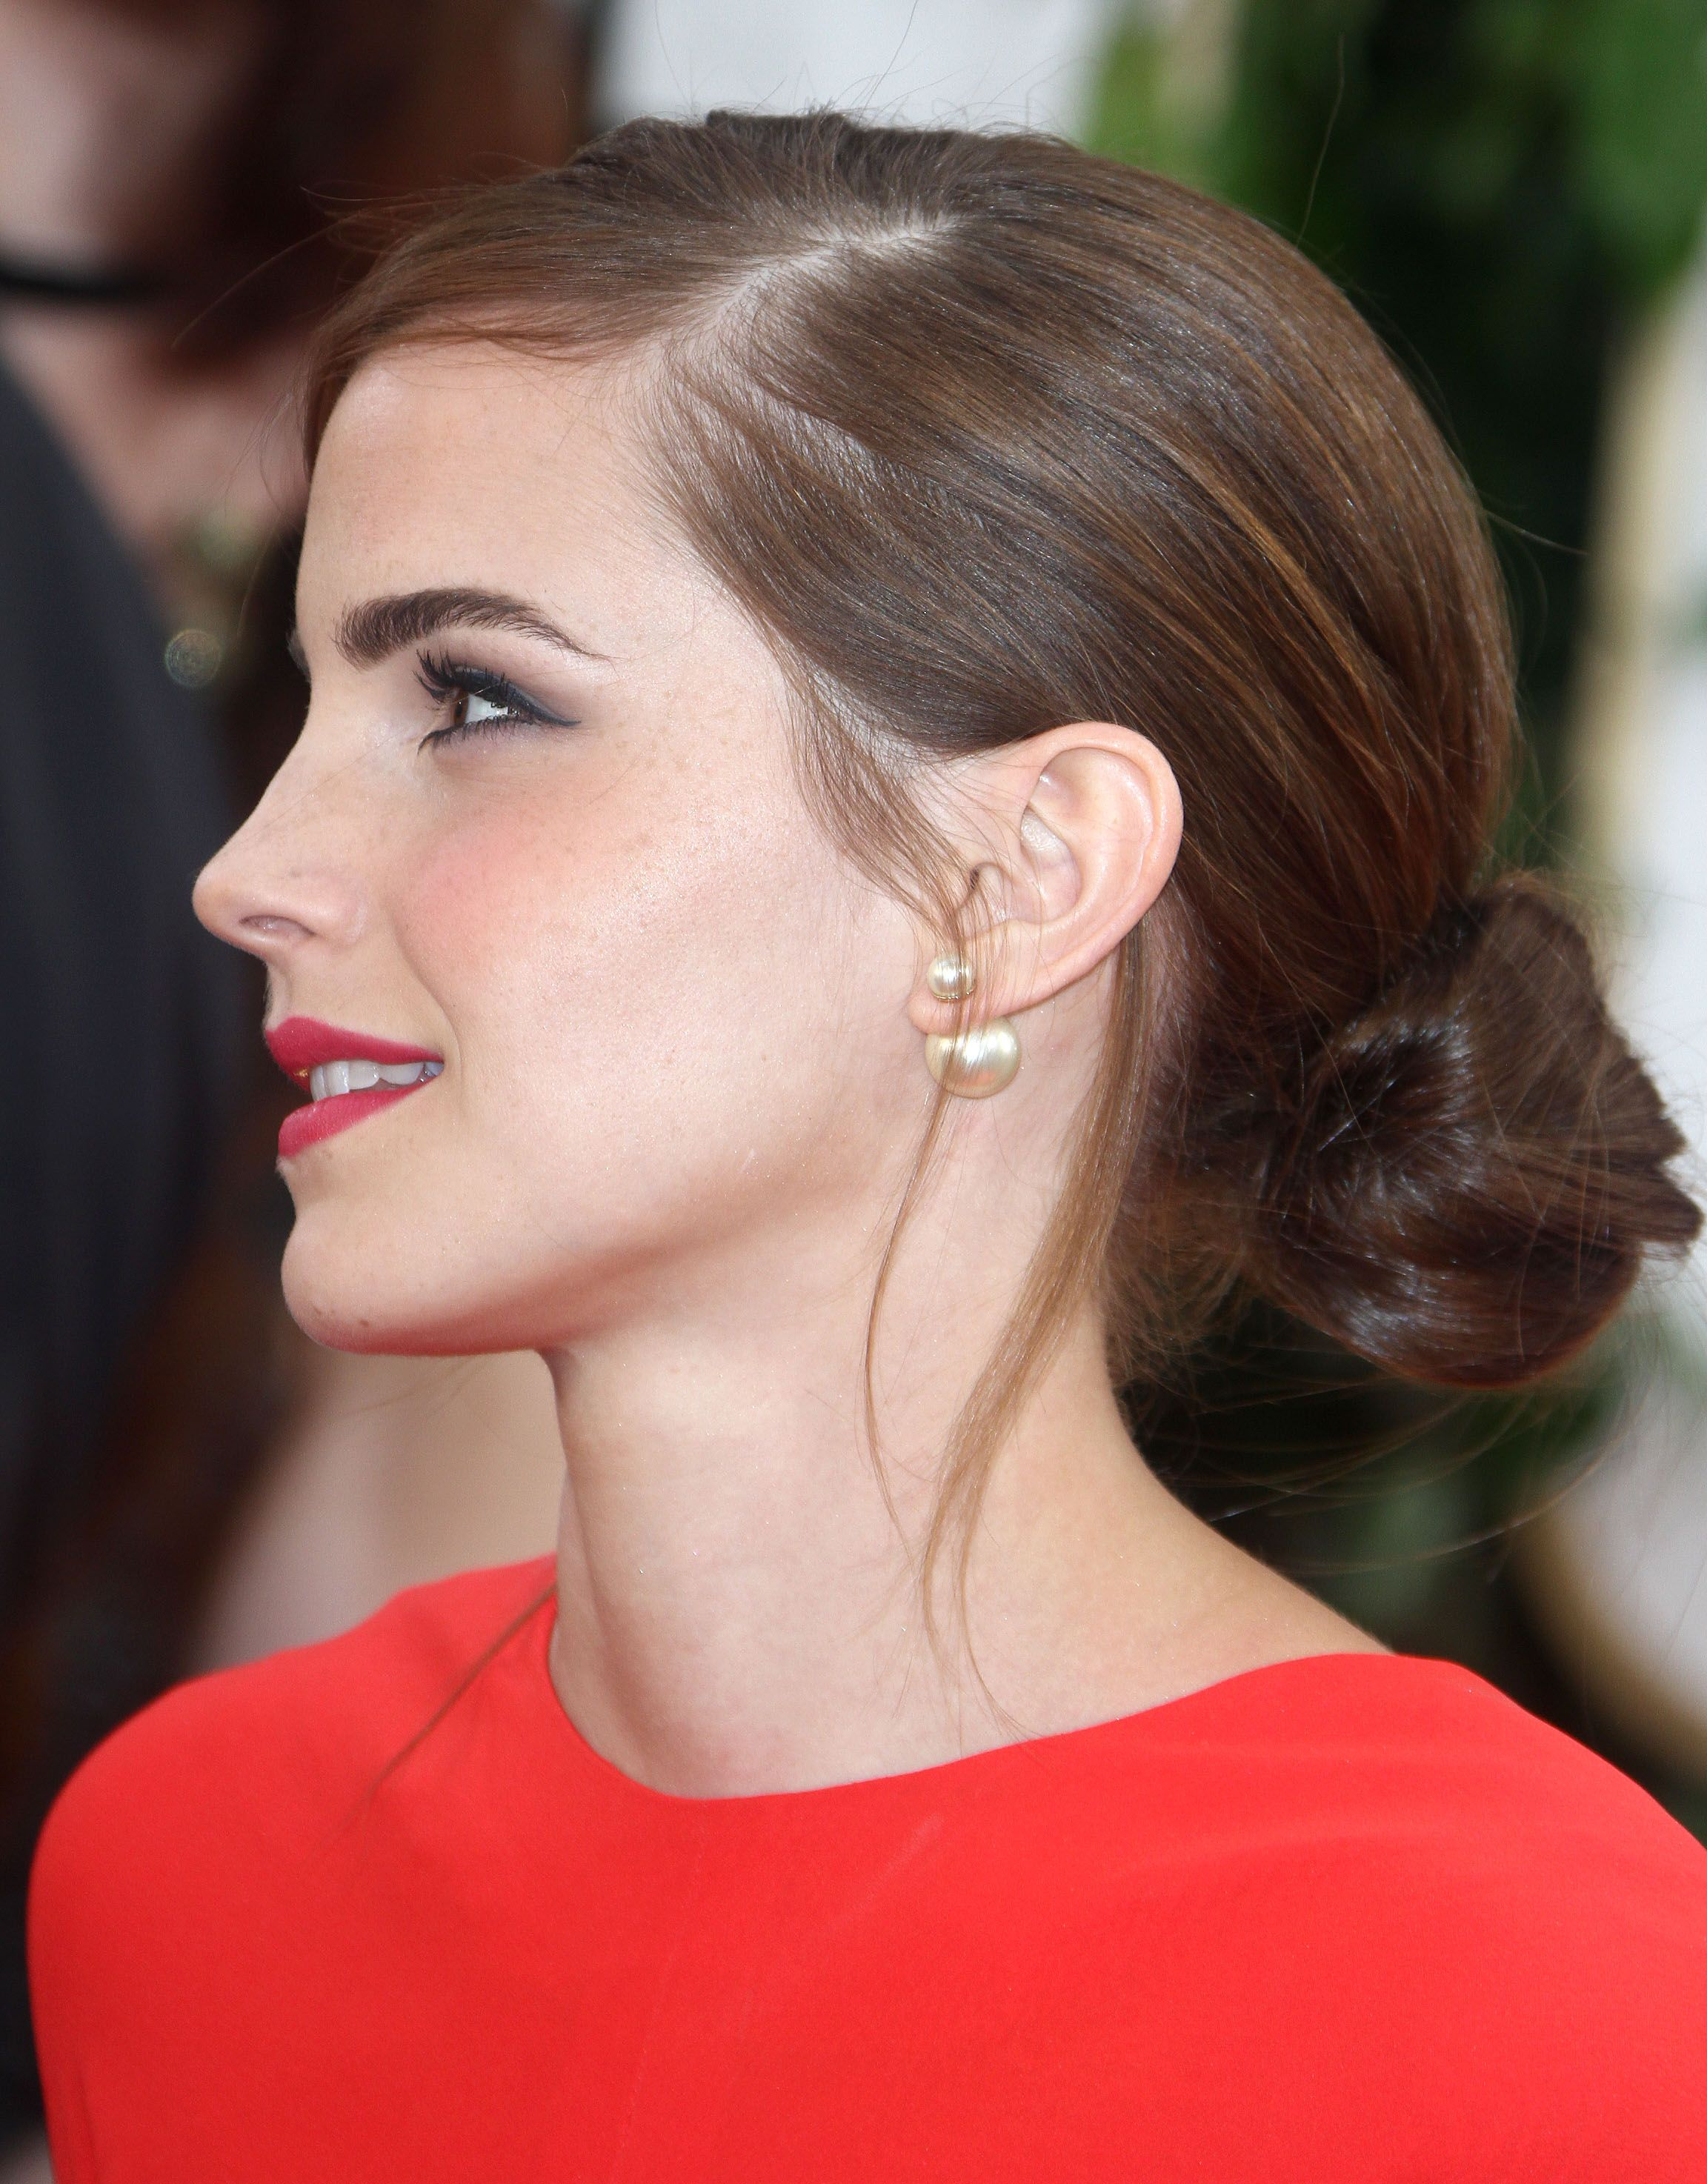 Golden Globes 2014 The MustSee Beauty Looks is part of Emma watson hair, Emma watson makeup, Hair styles 2014, Prom hair, Valentine's day hairstyles, Emma watson - Who had the best hair and makeup  Here are the celebrity closeups!